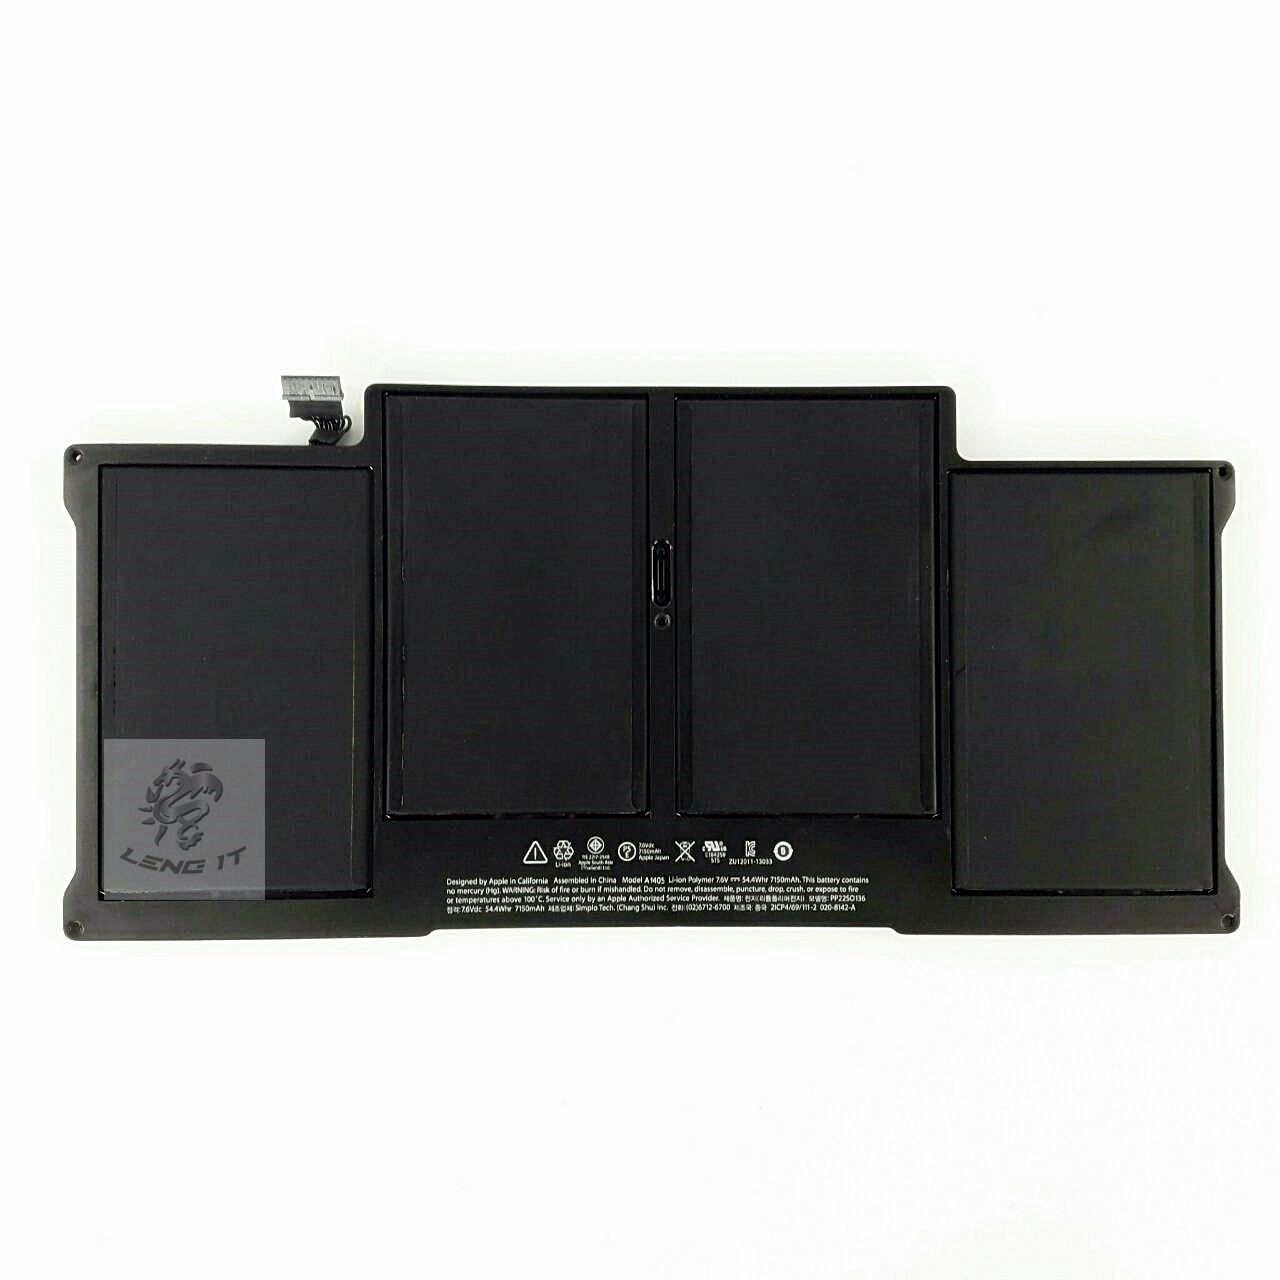 Battery Pack for Apple A1405